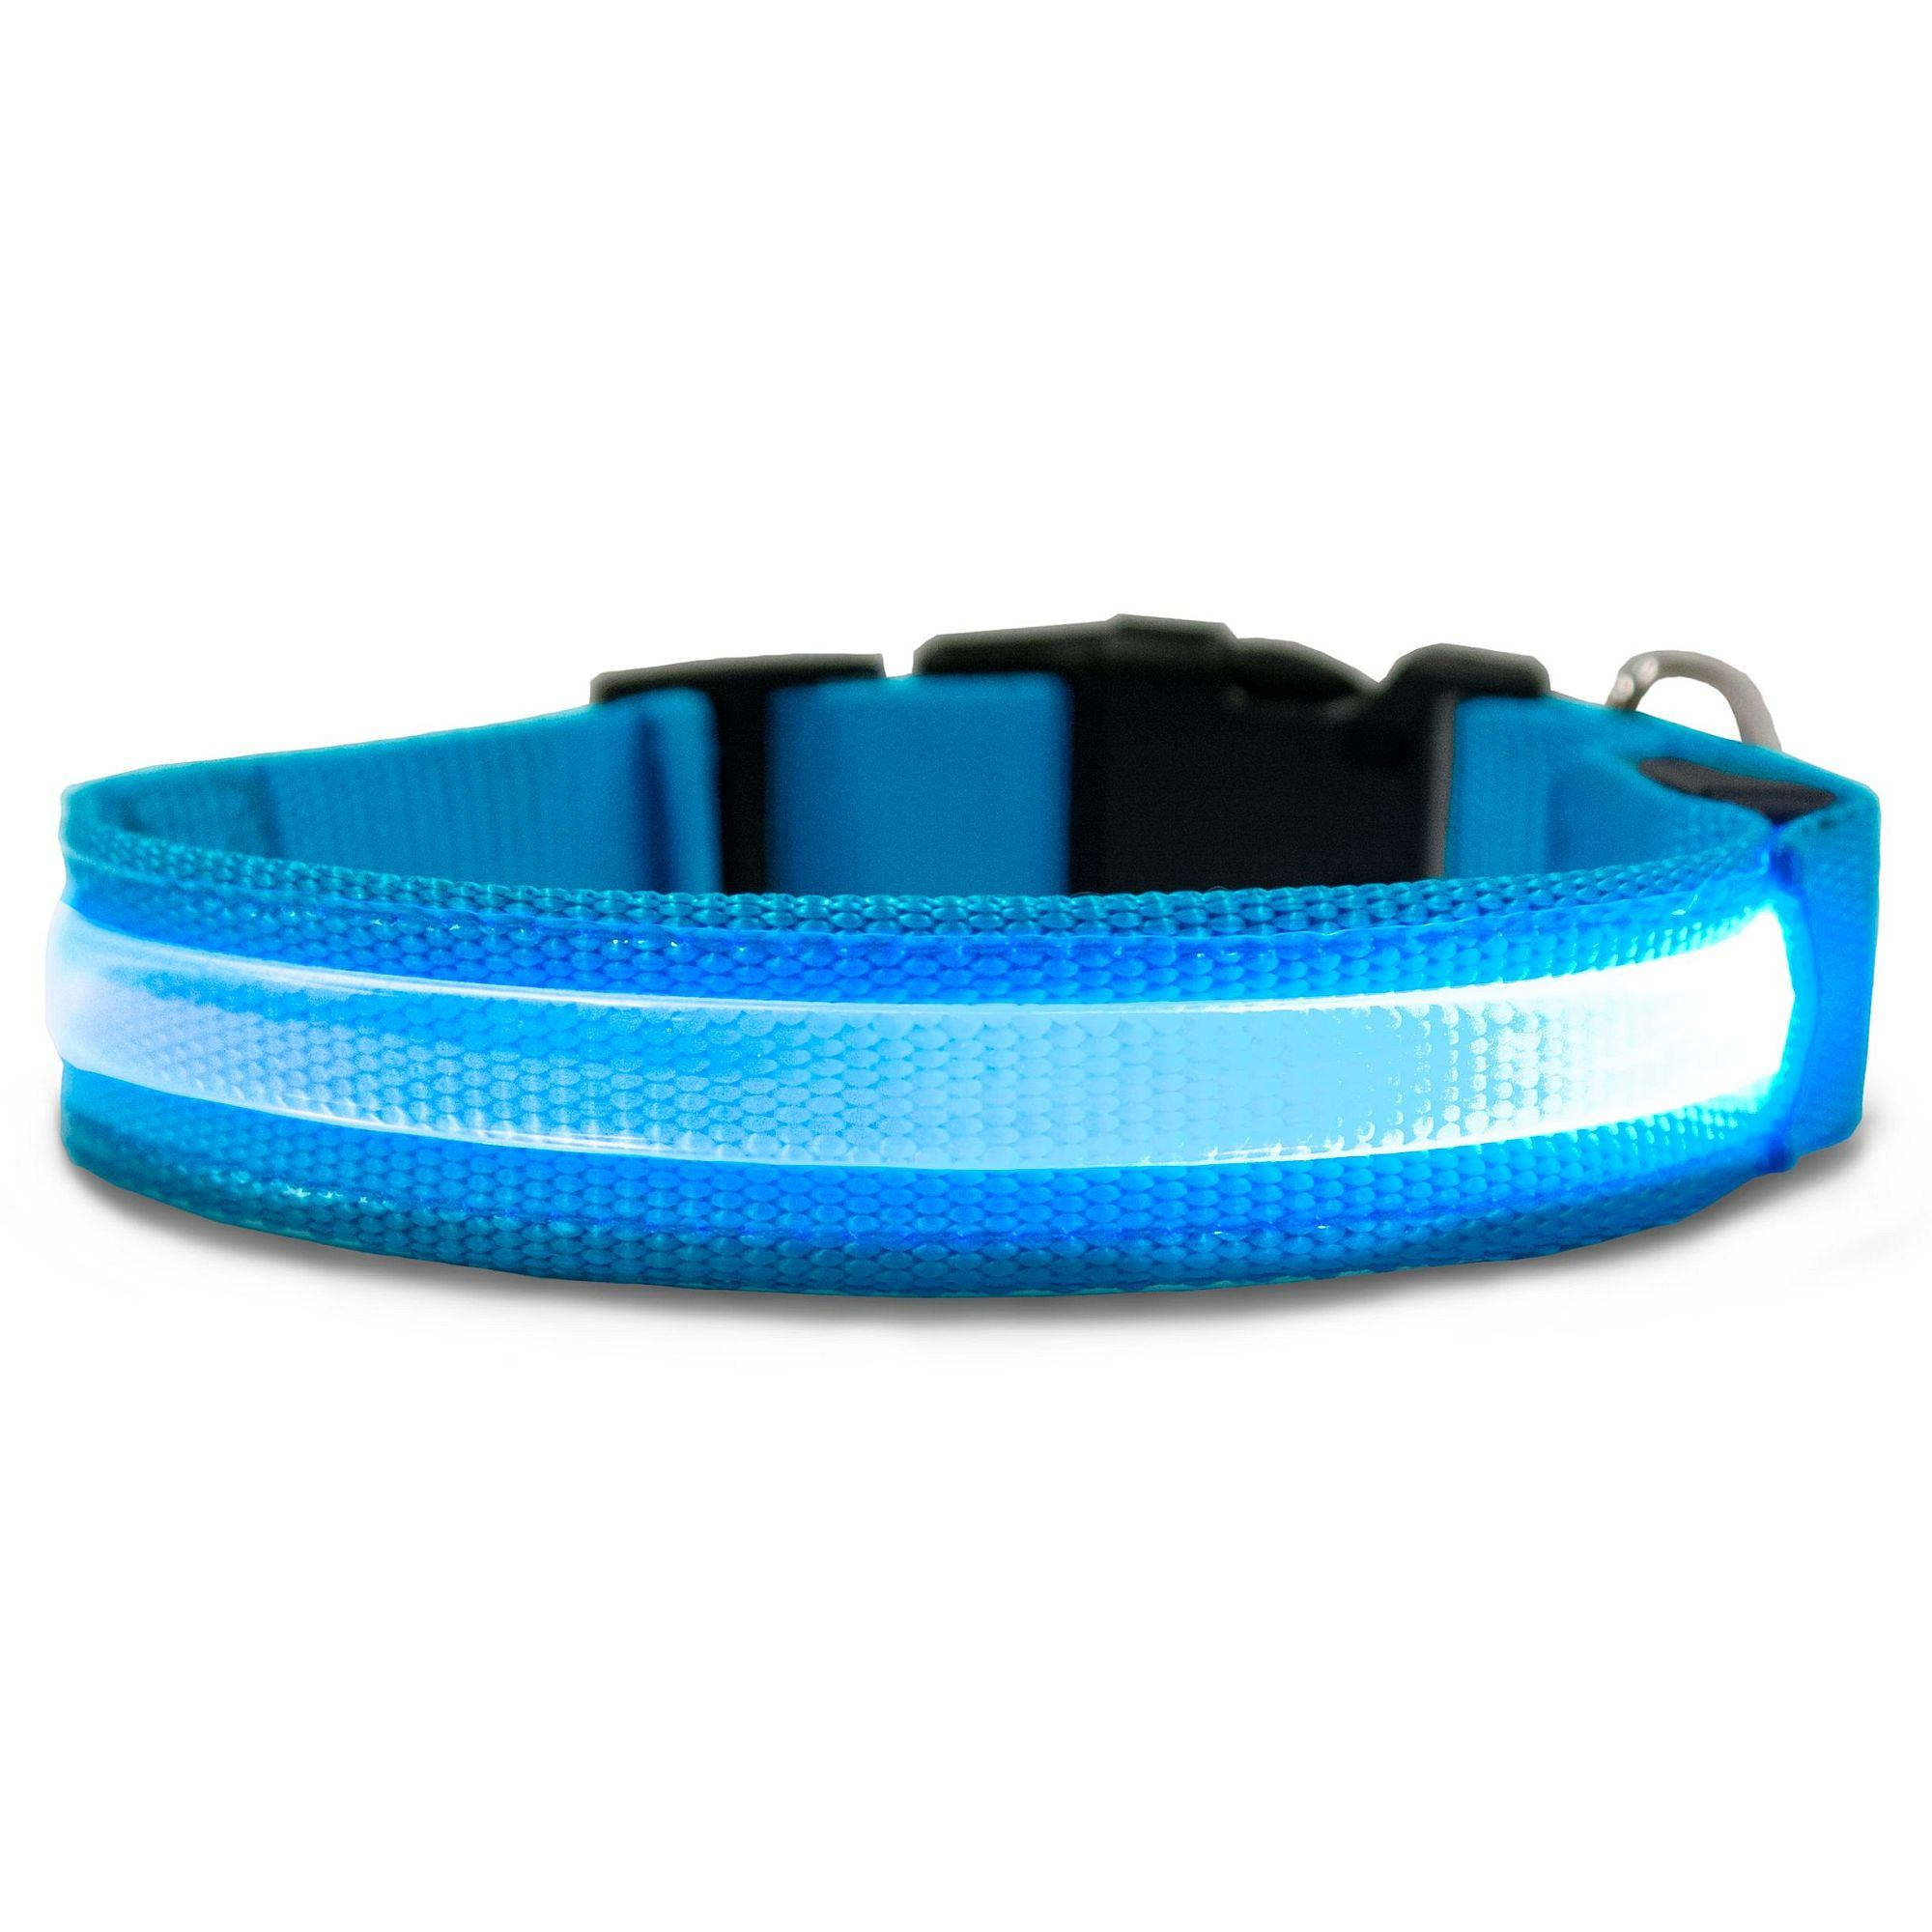 FurHaven LED Safety Pet Collar - Blue